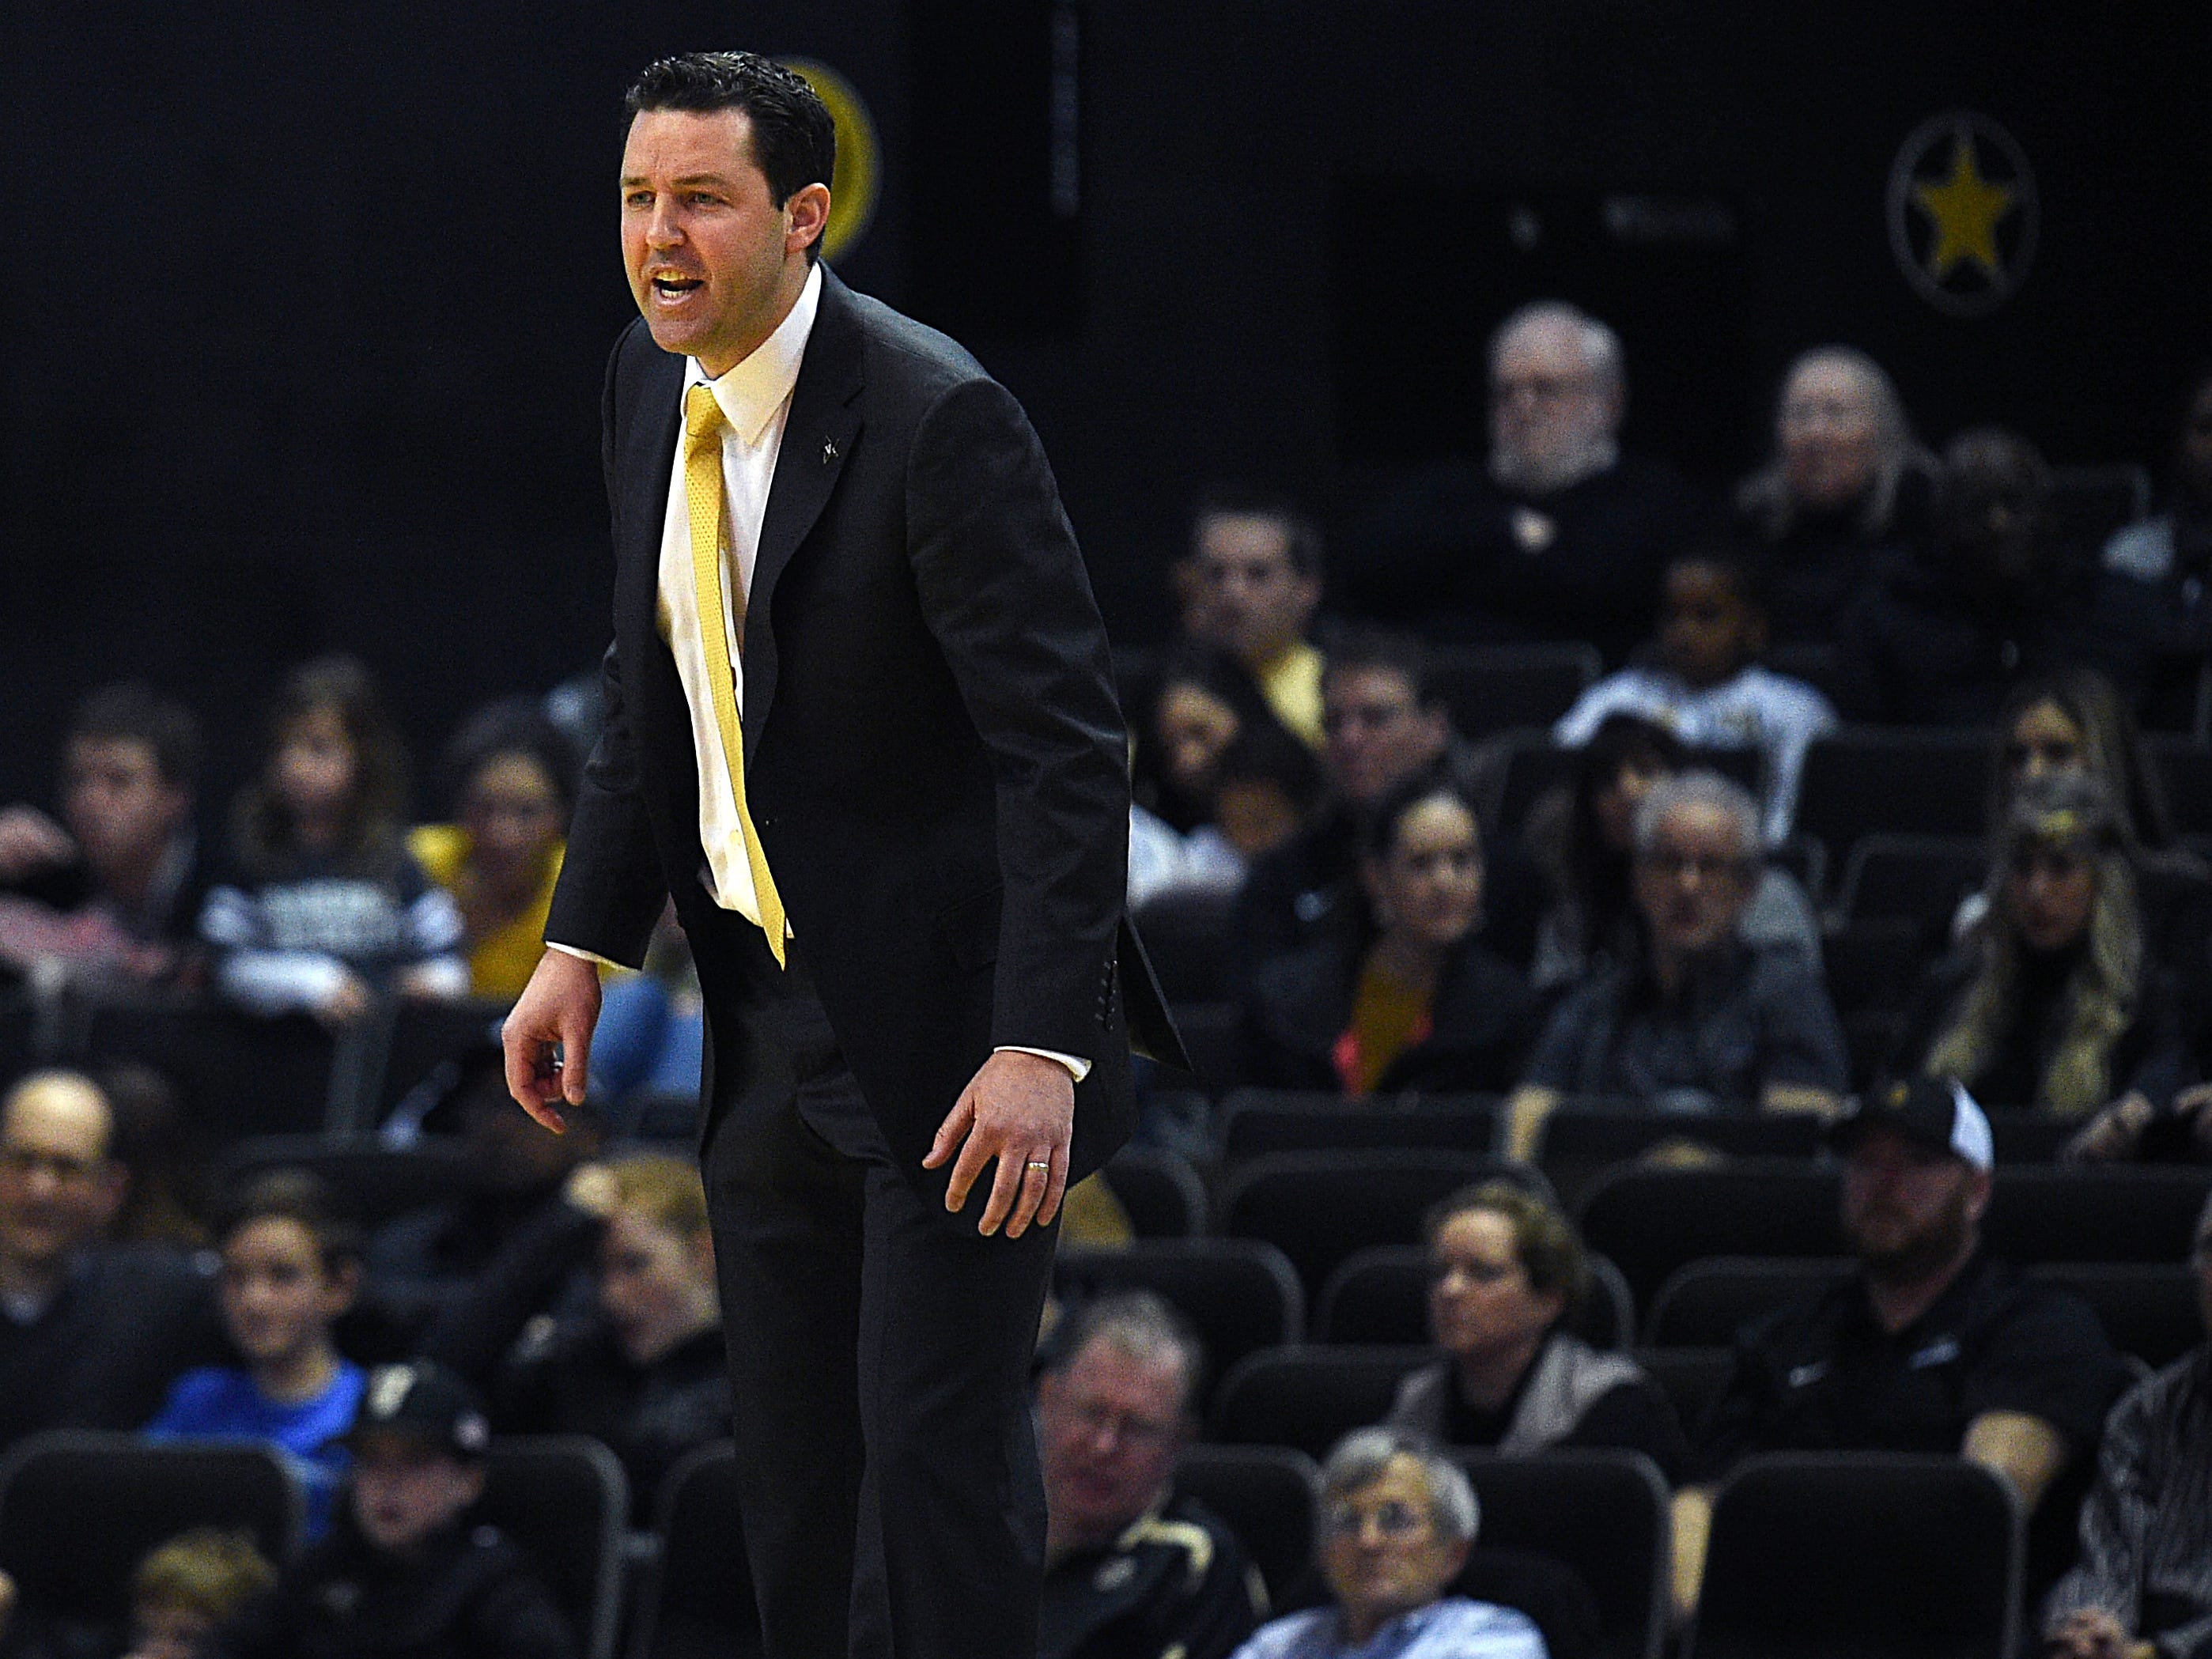 Vanderbilt head caoch Bryce Drew gives instructions to his players during a games against TSU at Memorial Gym in Nashville on Saturday, Dec. 29, 2018.